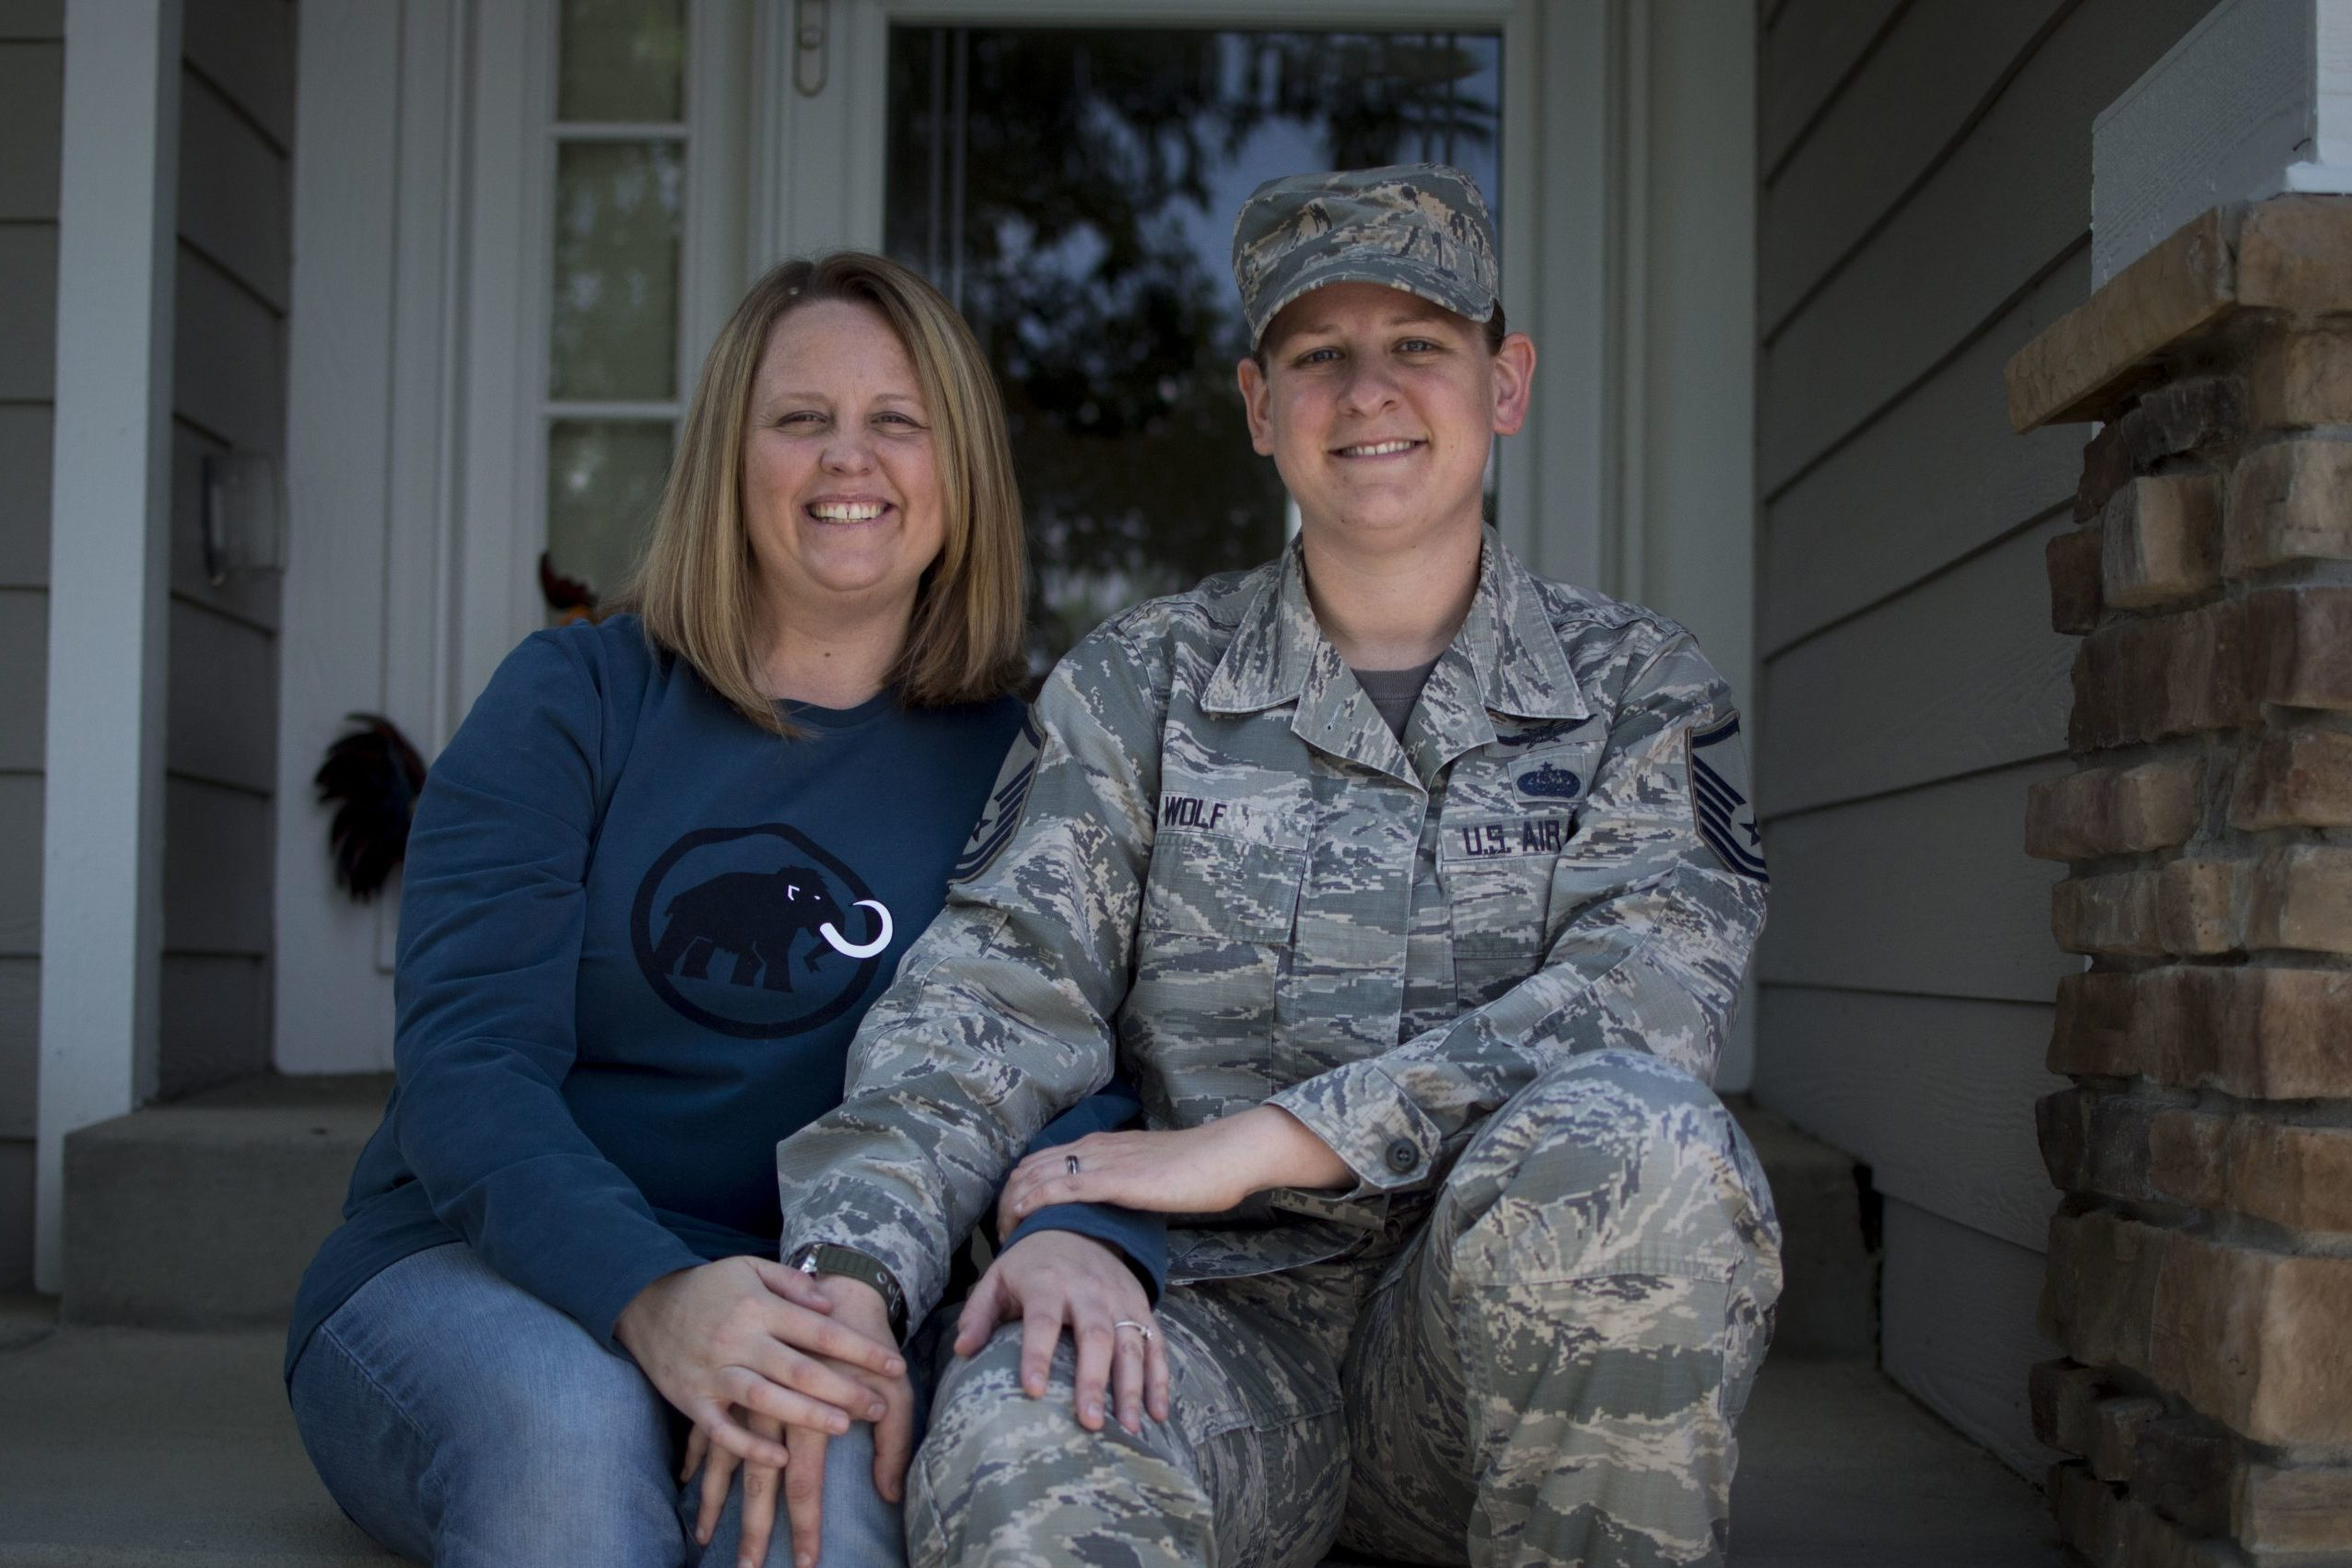 COLORADO SPRINGS, Colo. – Master Sgt. Sarah Wolf, 561st Network Operations Squadron noncommissioned officer in charge, sits at home in Colorado Springs, Colorado, June 15, 2018, with her wife, Amy Wolf, who she met while they both were stationed at Hickam Air Force Base, Hawaii, in 2013. After the 2011 repeal of Don't Ask Don't Tell, a military policy that didn't allow gays or lesbians to be vocal about their sexual orientation, it was sometimes hard for Sarah to talk about her significant other. Sarah said the Air Force has been supportive of her, and in 2016, Sarah and Amy got married in Hawaii. (U.S. Air Force photo by Audrey Jensen)